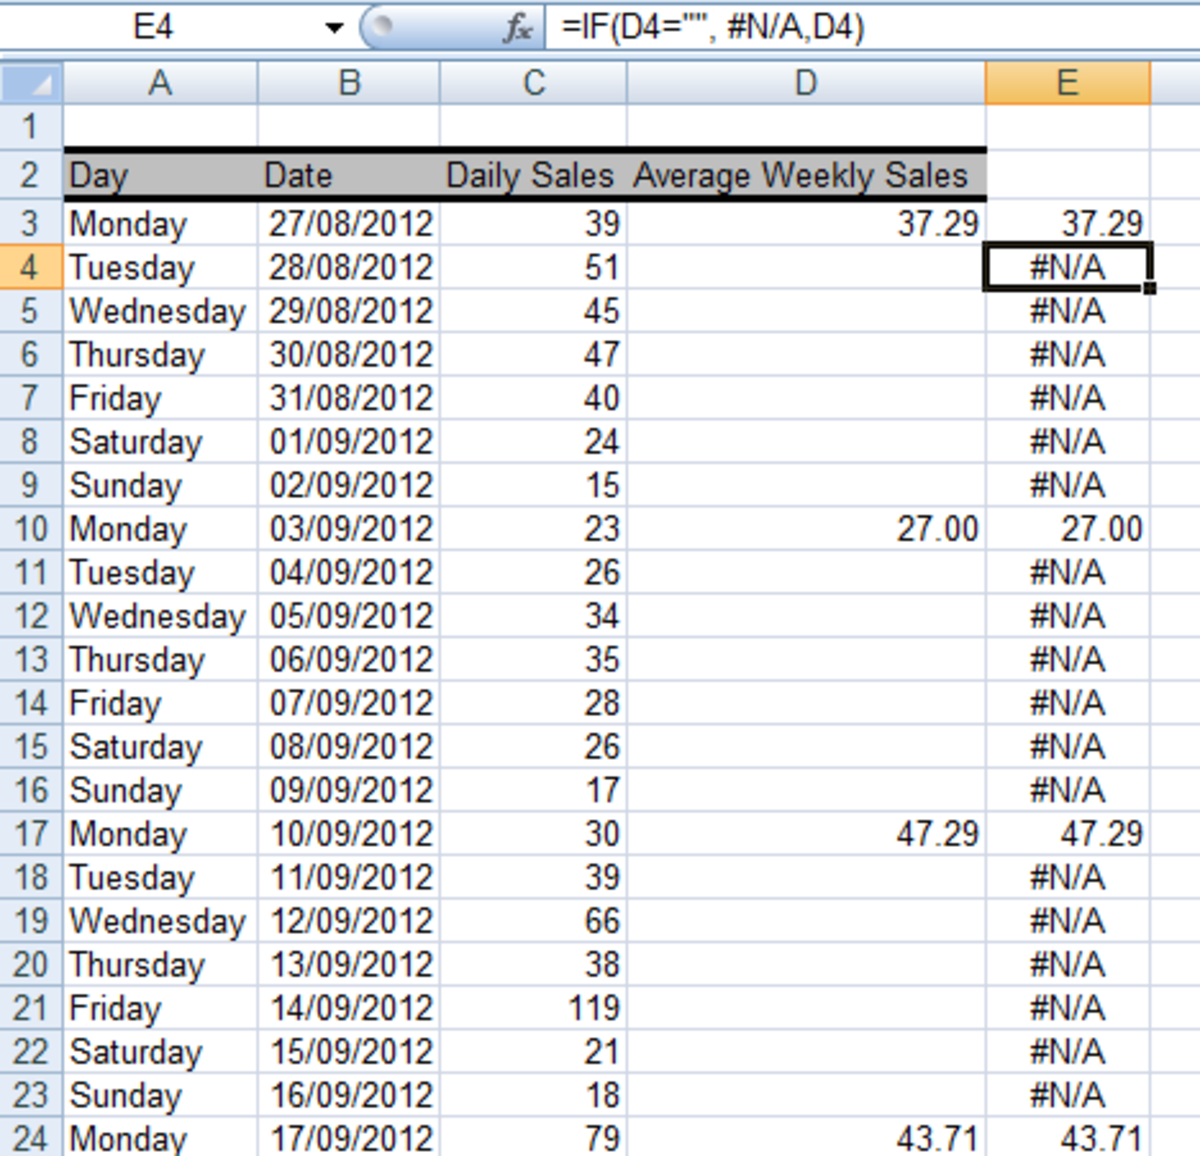 Ediblewildsus  Unique How To Get Excel  And  To Ignore Empty Cells In A Chart Or  With Extraordinary Using The If Function In A Formula To Convert Empty Cells To Na With Cute Excel Change Cell Color Also Round To Nearest Thousand In Excel In Addition Business Financial Statement Template Excel And Least Squares In Excel As Well As Countif On Excel Additionally Calculating Confidence Intervals In Excel From Turbofuturecom With Ediblewildsus  Extraordinary How To Get Excel  And  To Ignore Empty Cells In A Chart Or  With Cute Using The If Function In A Formula To Convert Empty Cells To Na And Unique Excel Change Cell Color Also Round To Nearest Thousand In Excel In Addition Business Financial Statement Template Excel From Turbofuturecom